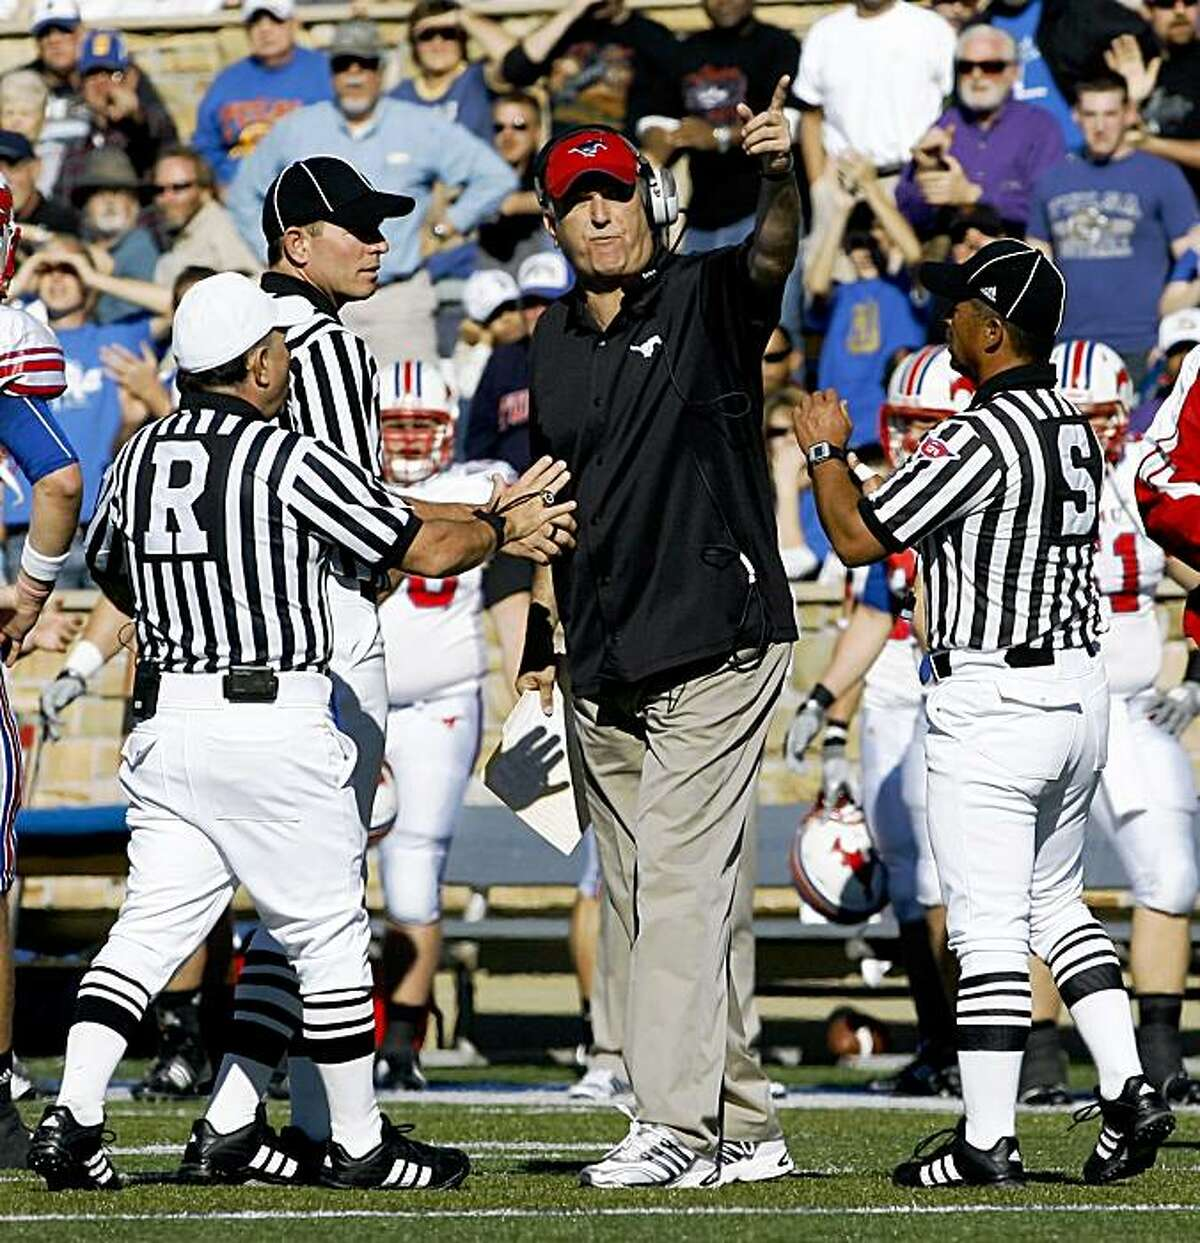 SMU hefad coach June Jones is escorted off the field by three officials during the third quarter of an NCAA college football game in Tulsa, Okla., on Saturday, Oct. 31, 2009. Jones had been trying to call a time out. He was given a penalty for coming onto the field. SMU defeated Tulsa, 27-13. (AP Photo/David Crenshaw)